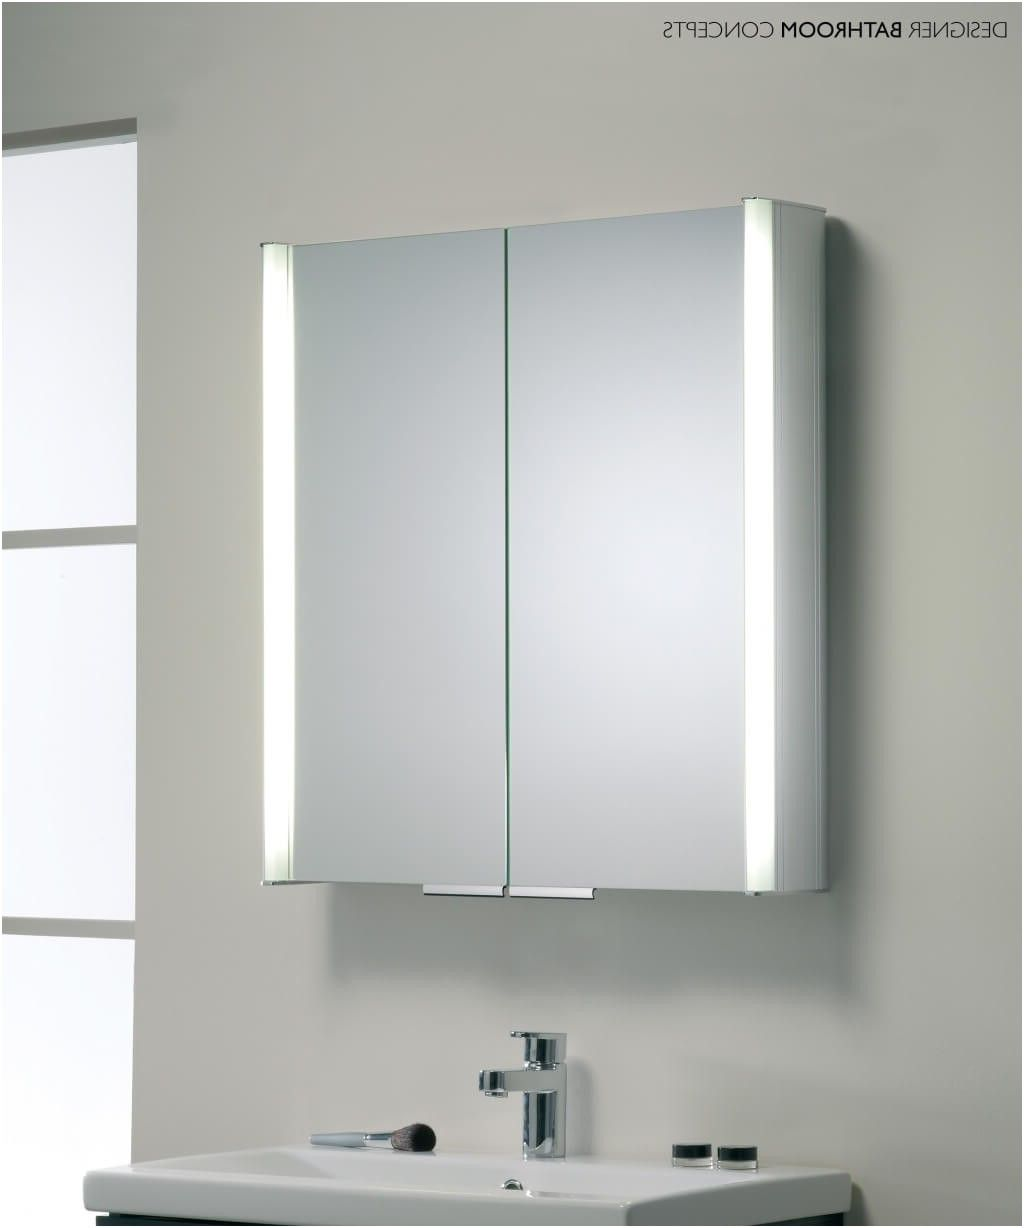 bathroom medicine cabinets with mirrors uk bathroom mirror doors ...